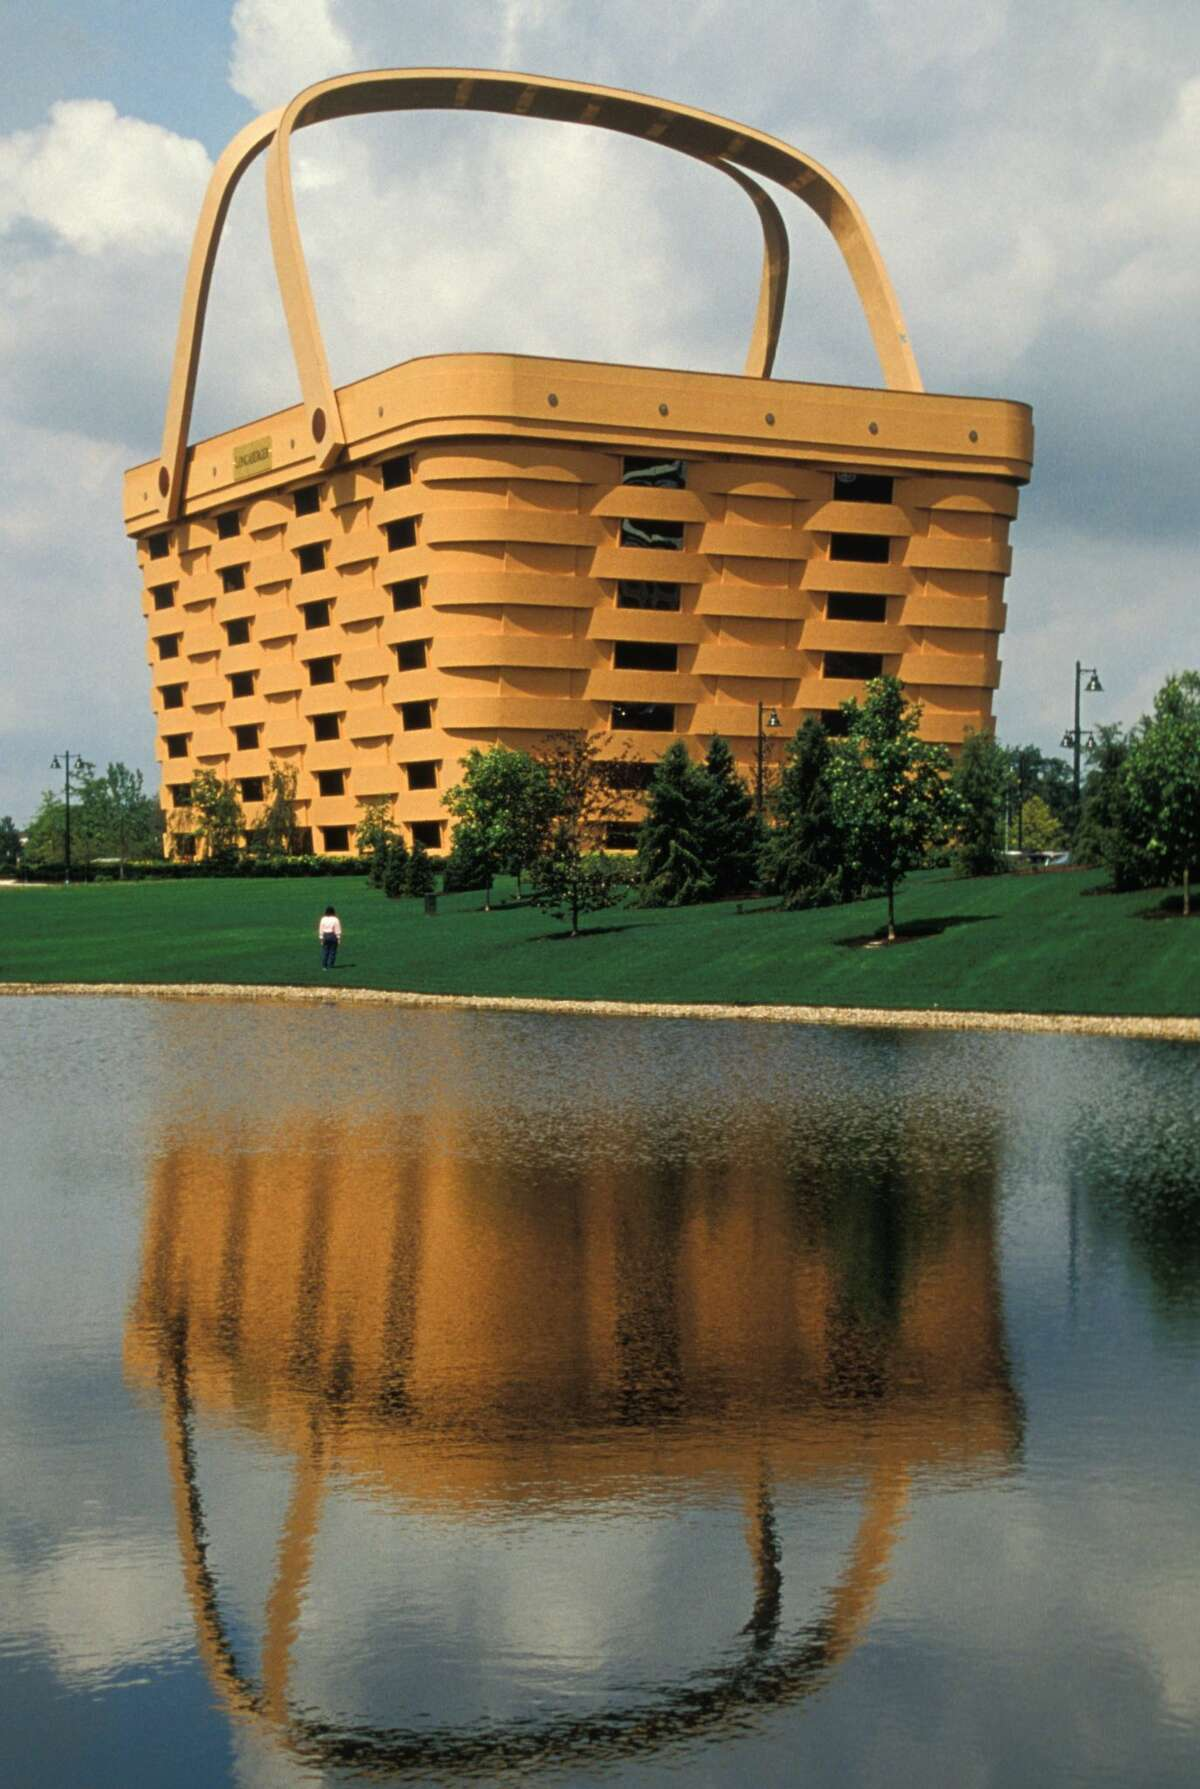 Here's another view of the seven-story headquarters of the Longaberger Company in Newark, Ohio. (Photo by: Jeff Greenberg/UIG via Getty Images)